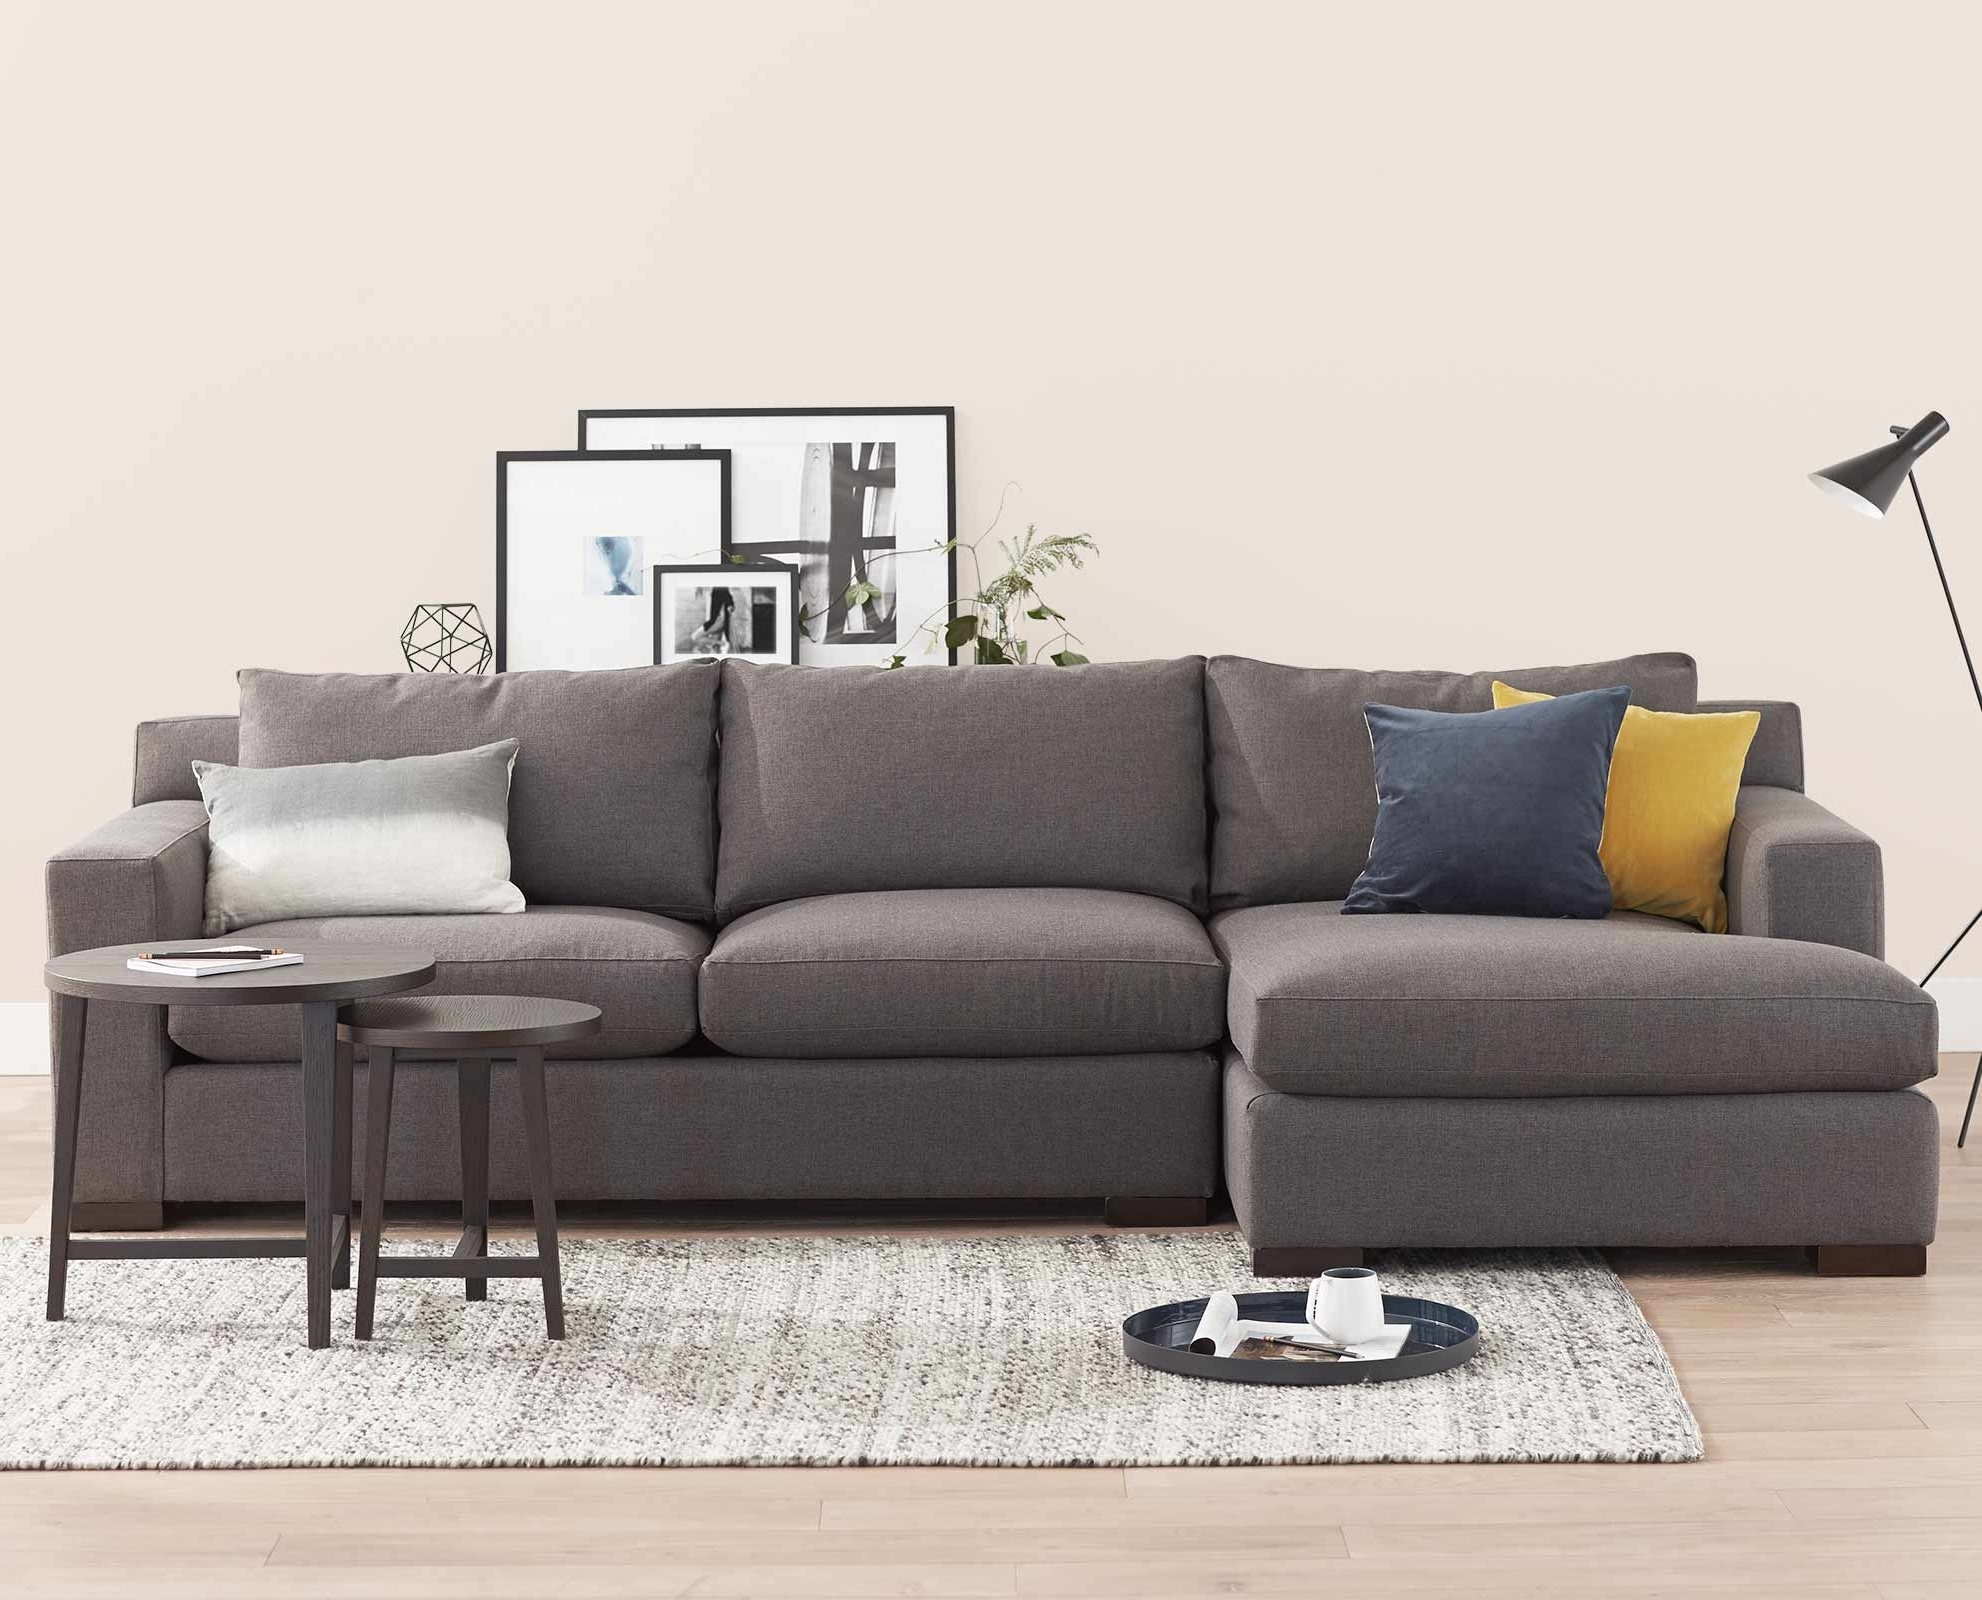 Most Recent Scandinavian Designs – Always Cozy And Always Classic, The Aida For Eco Friendly Sectional Sofas (View 20 of 20)